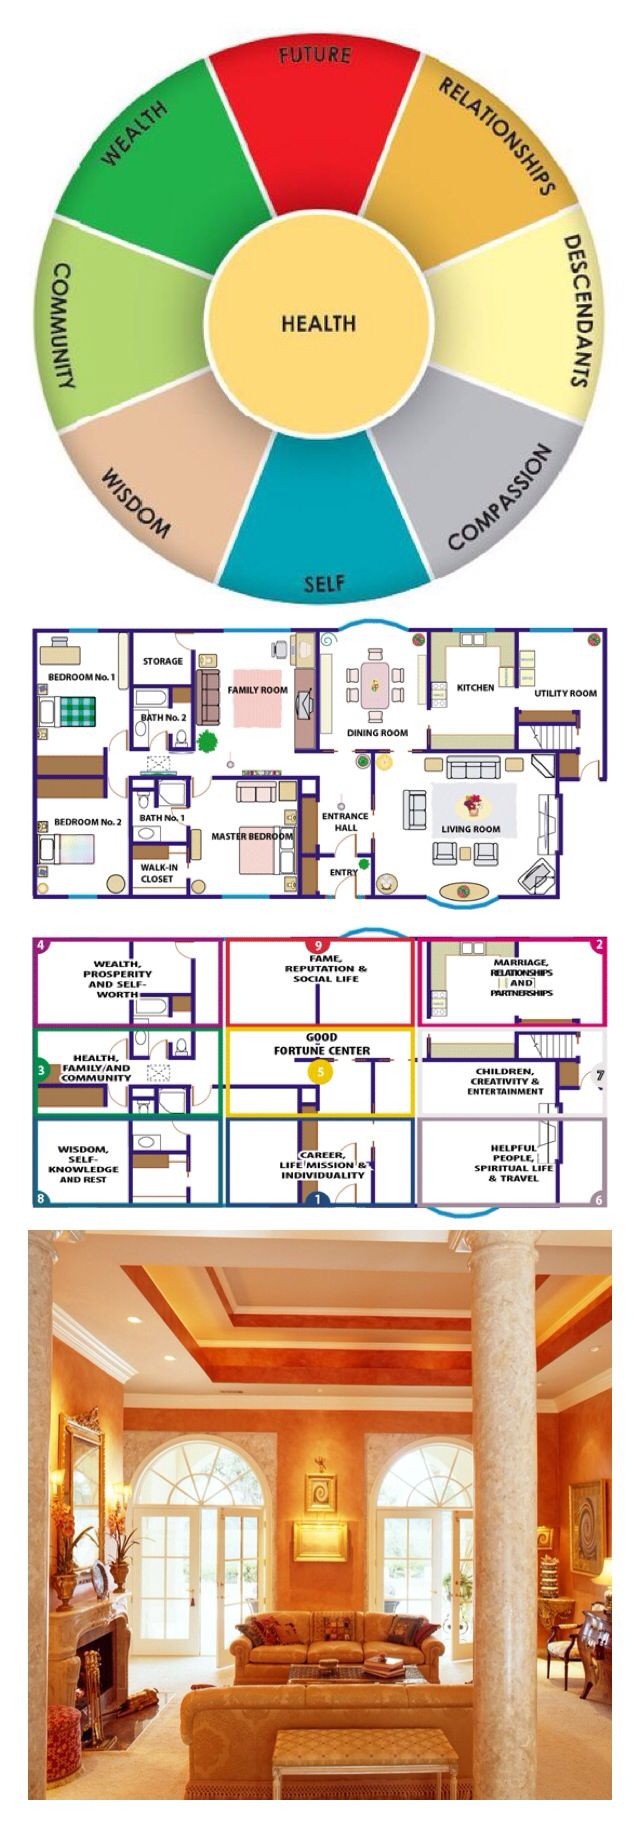 Feng Shui Bedroom Floor Plan best 25+ feng shui decorating ideas on pinterest | feng shui